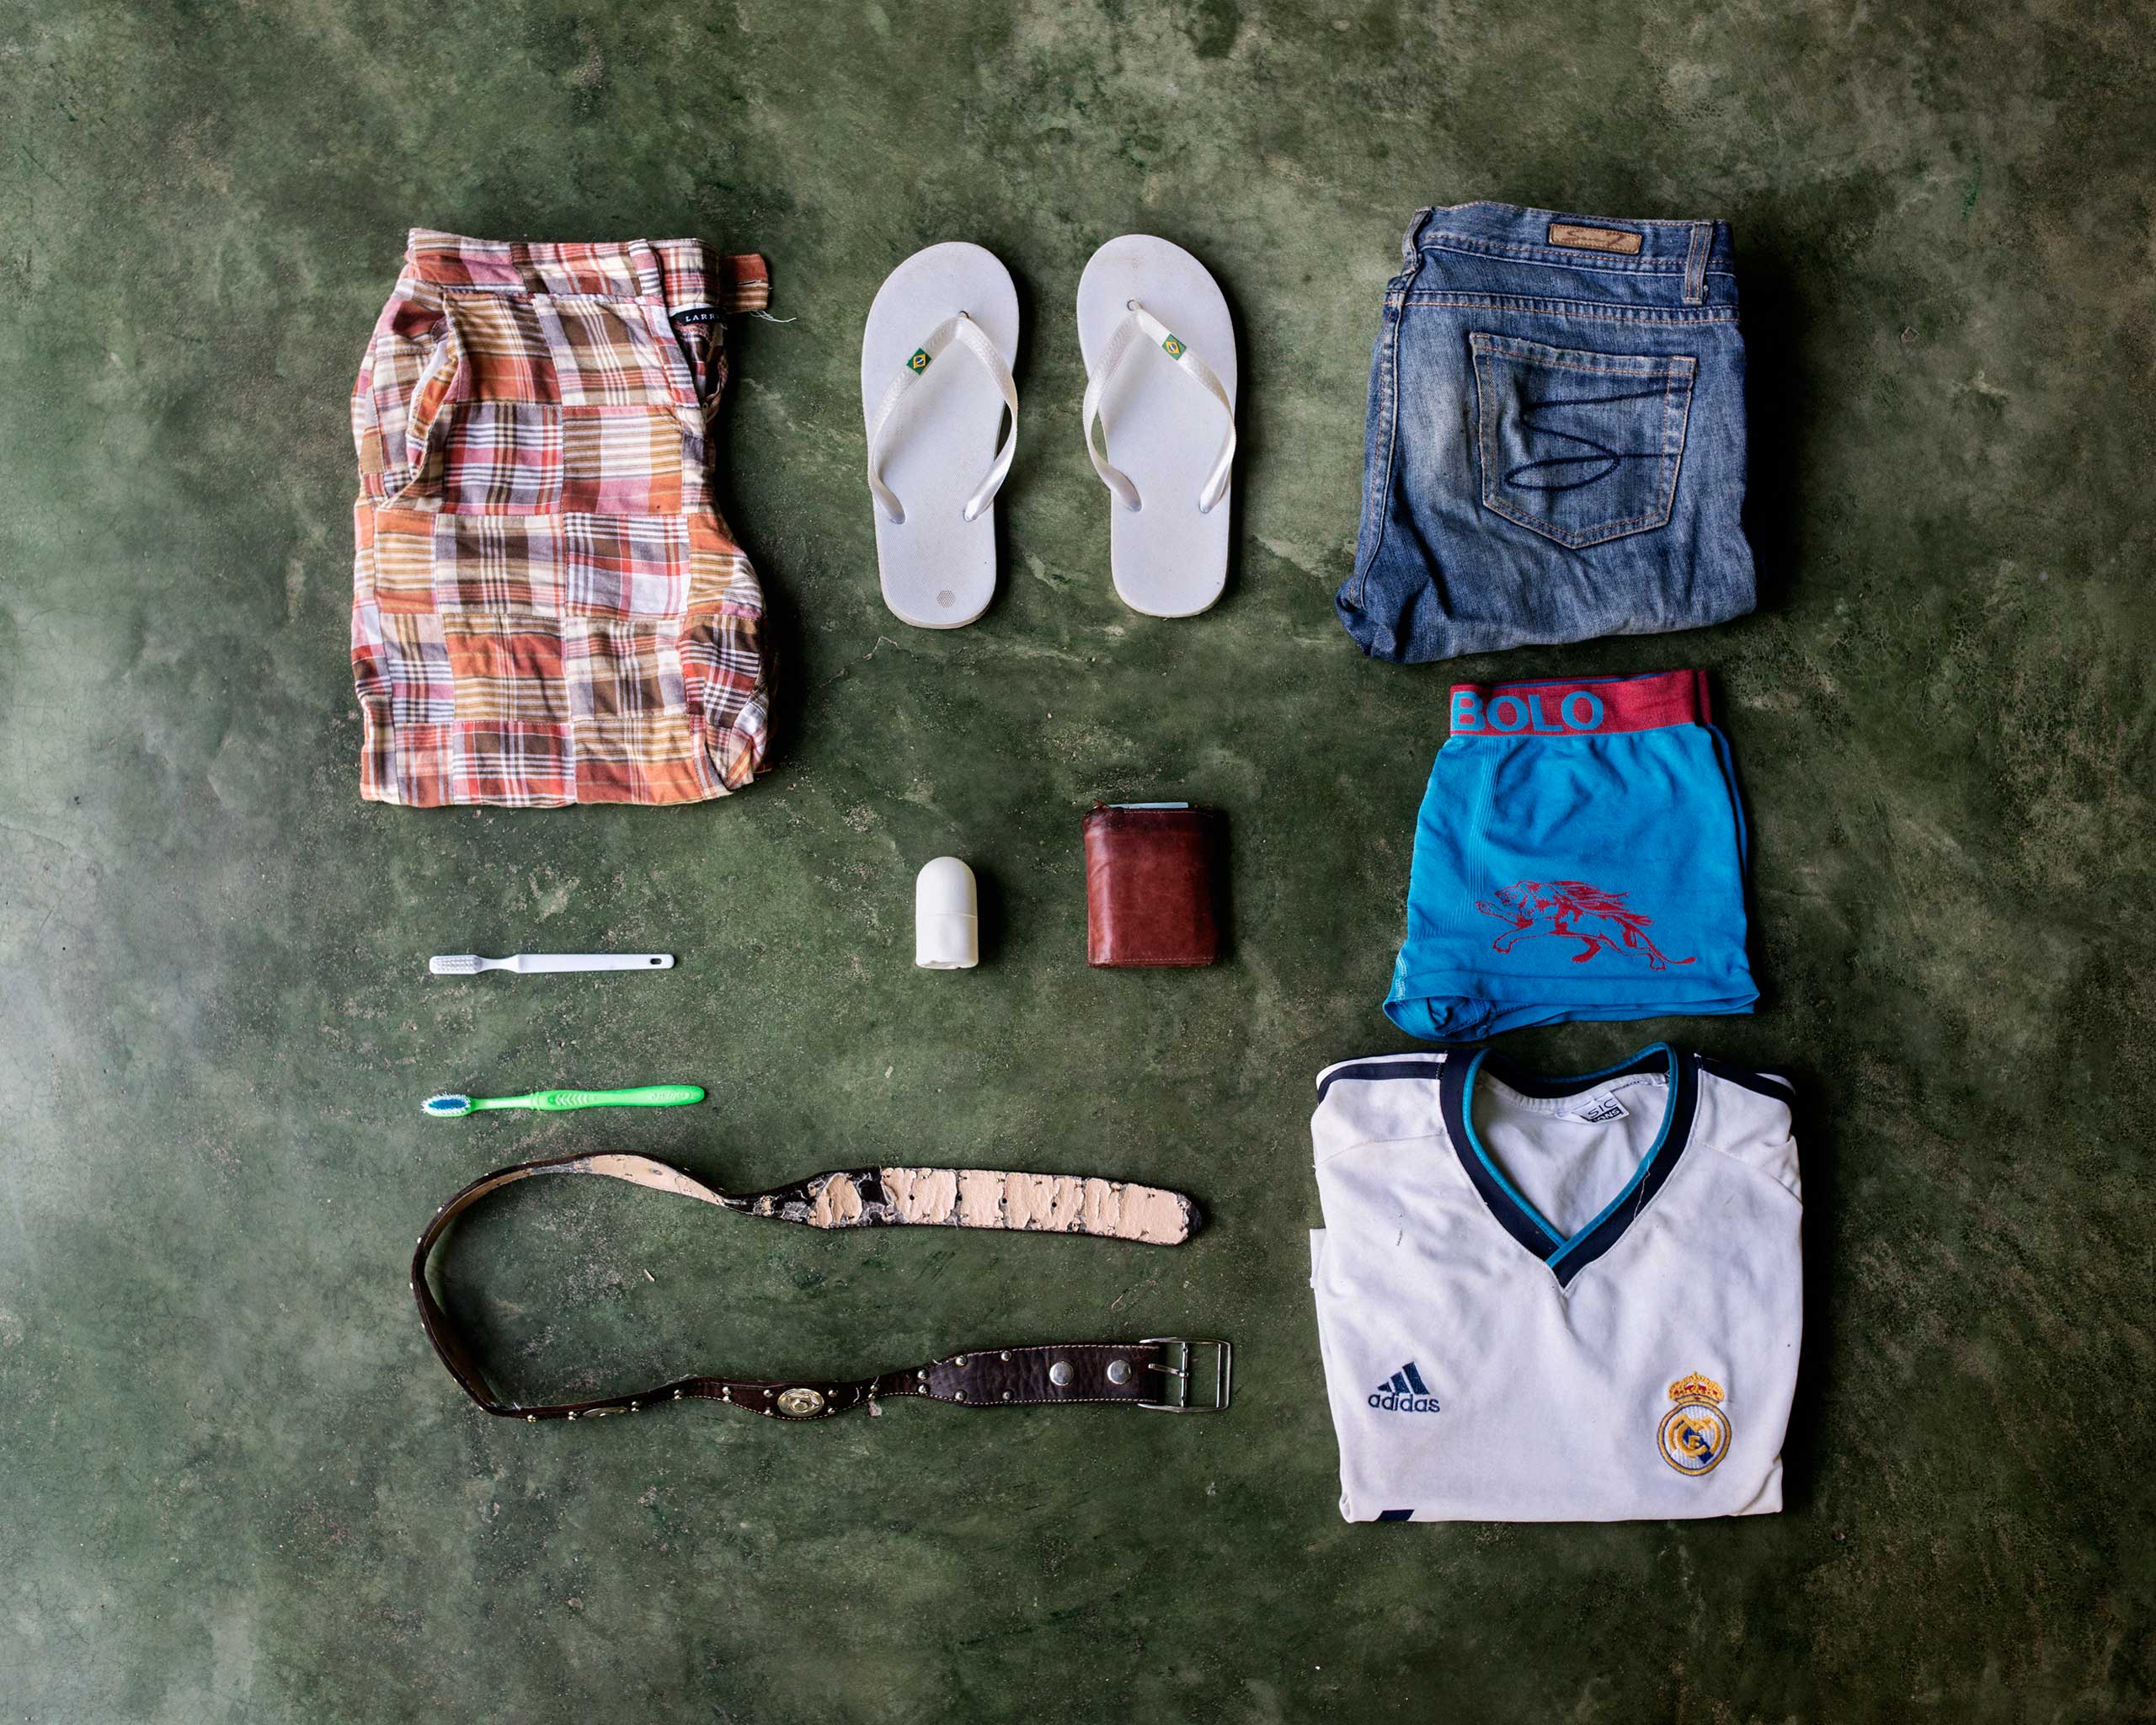 José Alfredo Bin, 27, from Guatemala. Deported from Mexico while he was trying to get to Miami, he wants to go to the U.S. to earn more money. In his bag, he has a pair of shorts, flip-flops, a pair of pants, two toothbrushes, deodorant, a wallet, underwear, a belt and a T-shirt of Real Madrid.